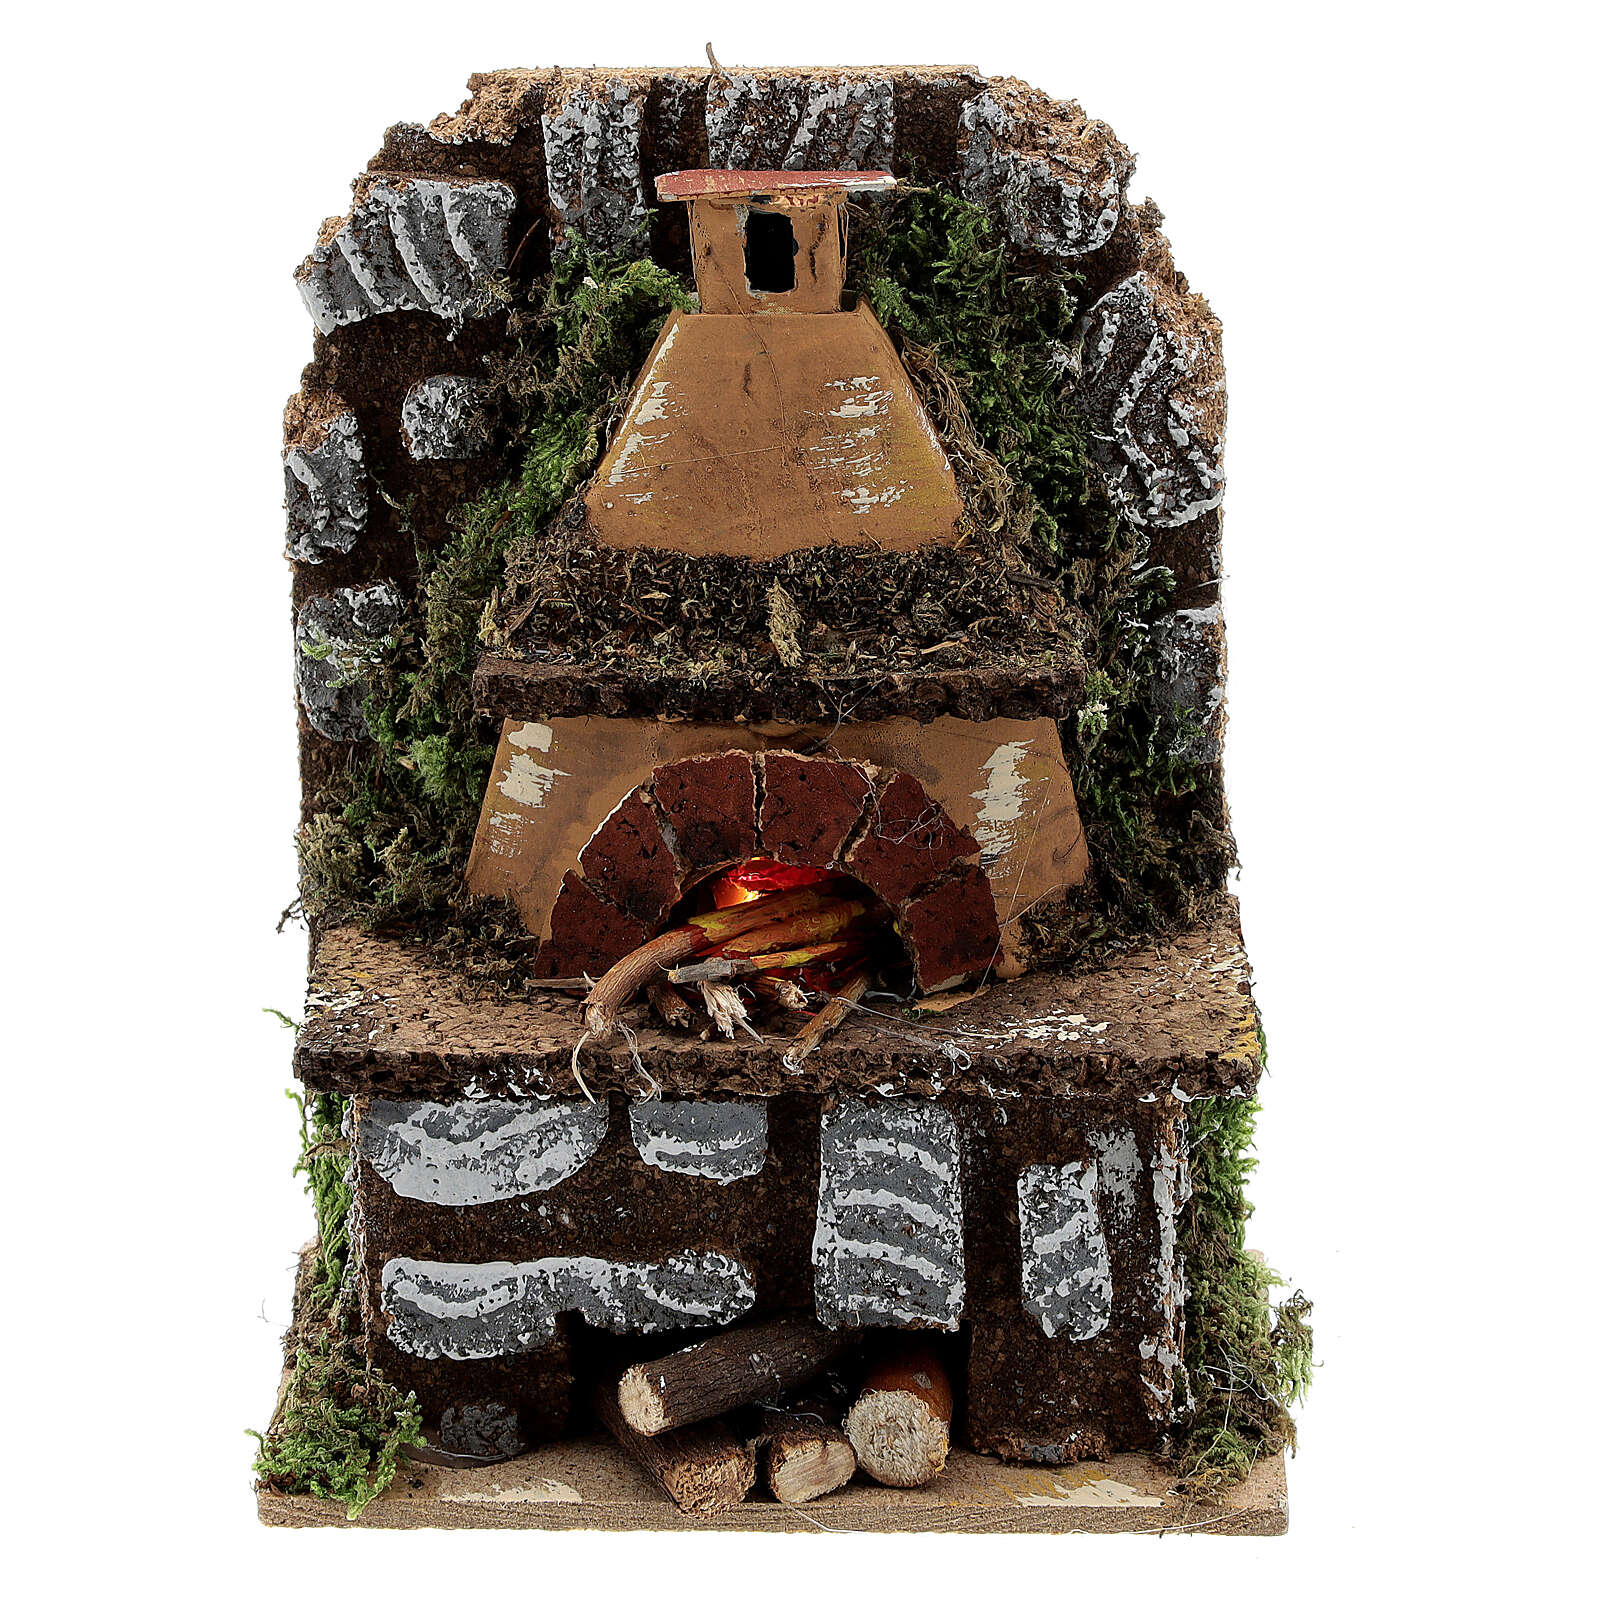 Mini wood fired outdoor oven FLAME EFFECT light bulb 15x10x5 nativity 8-10 cm 4